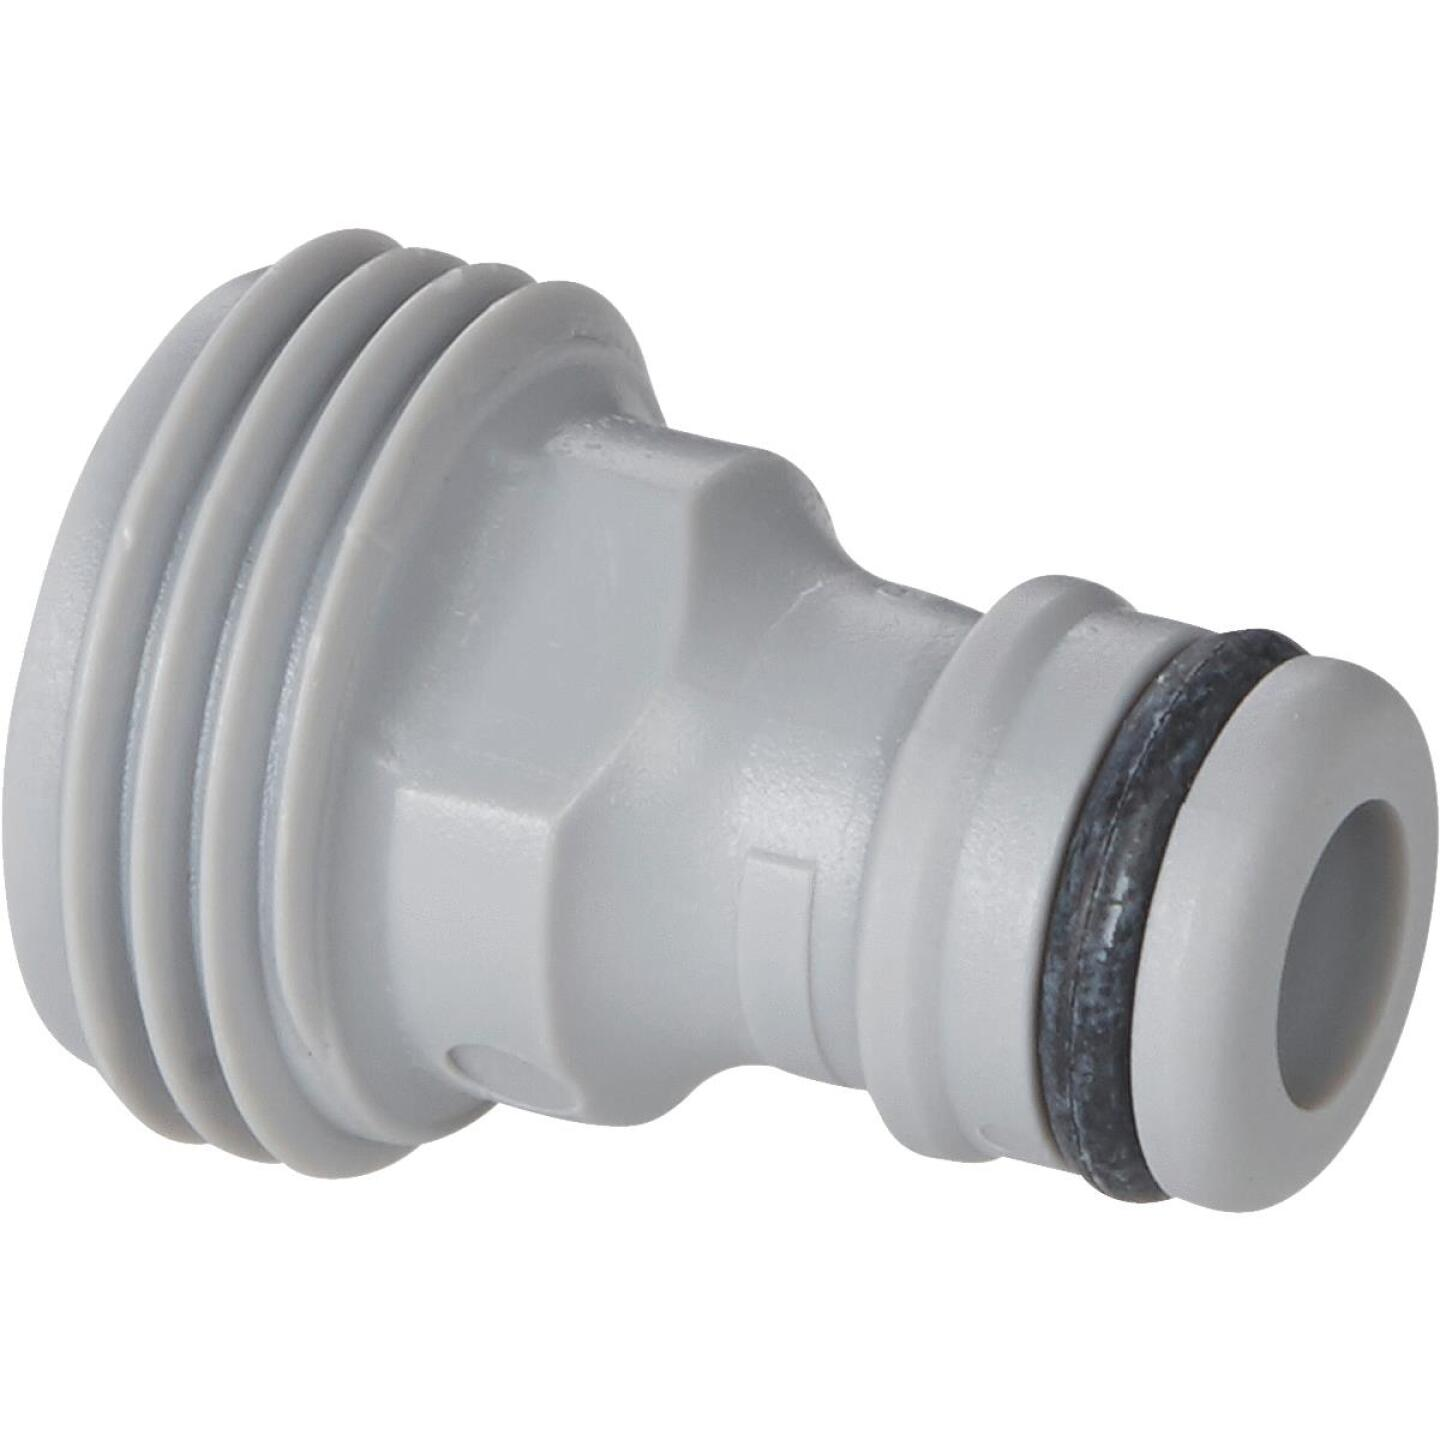 Gardena Classic Male Plastic Quick Connect Connector Accessory Adapter Image 1